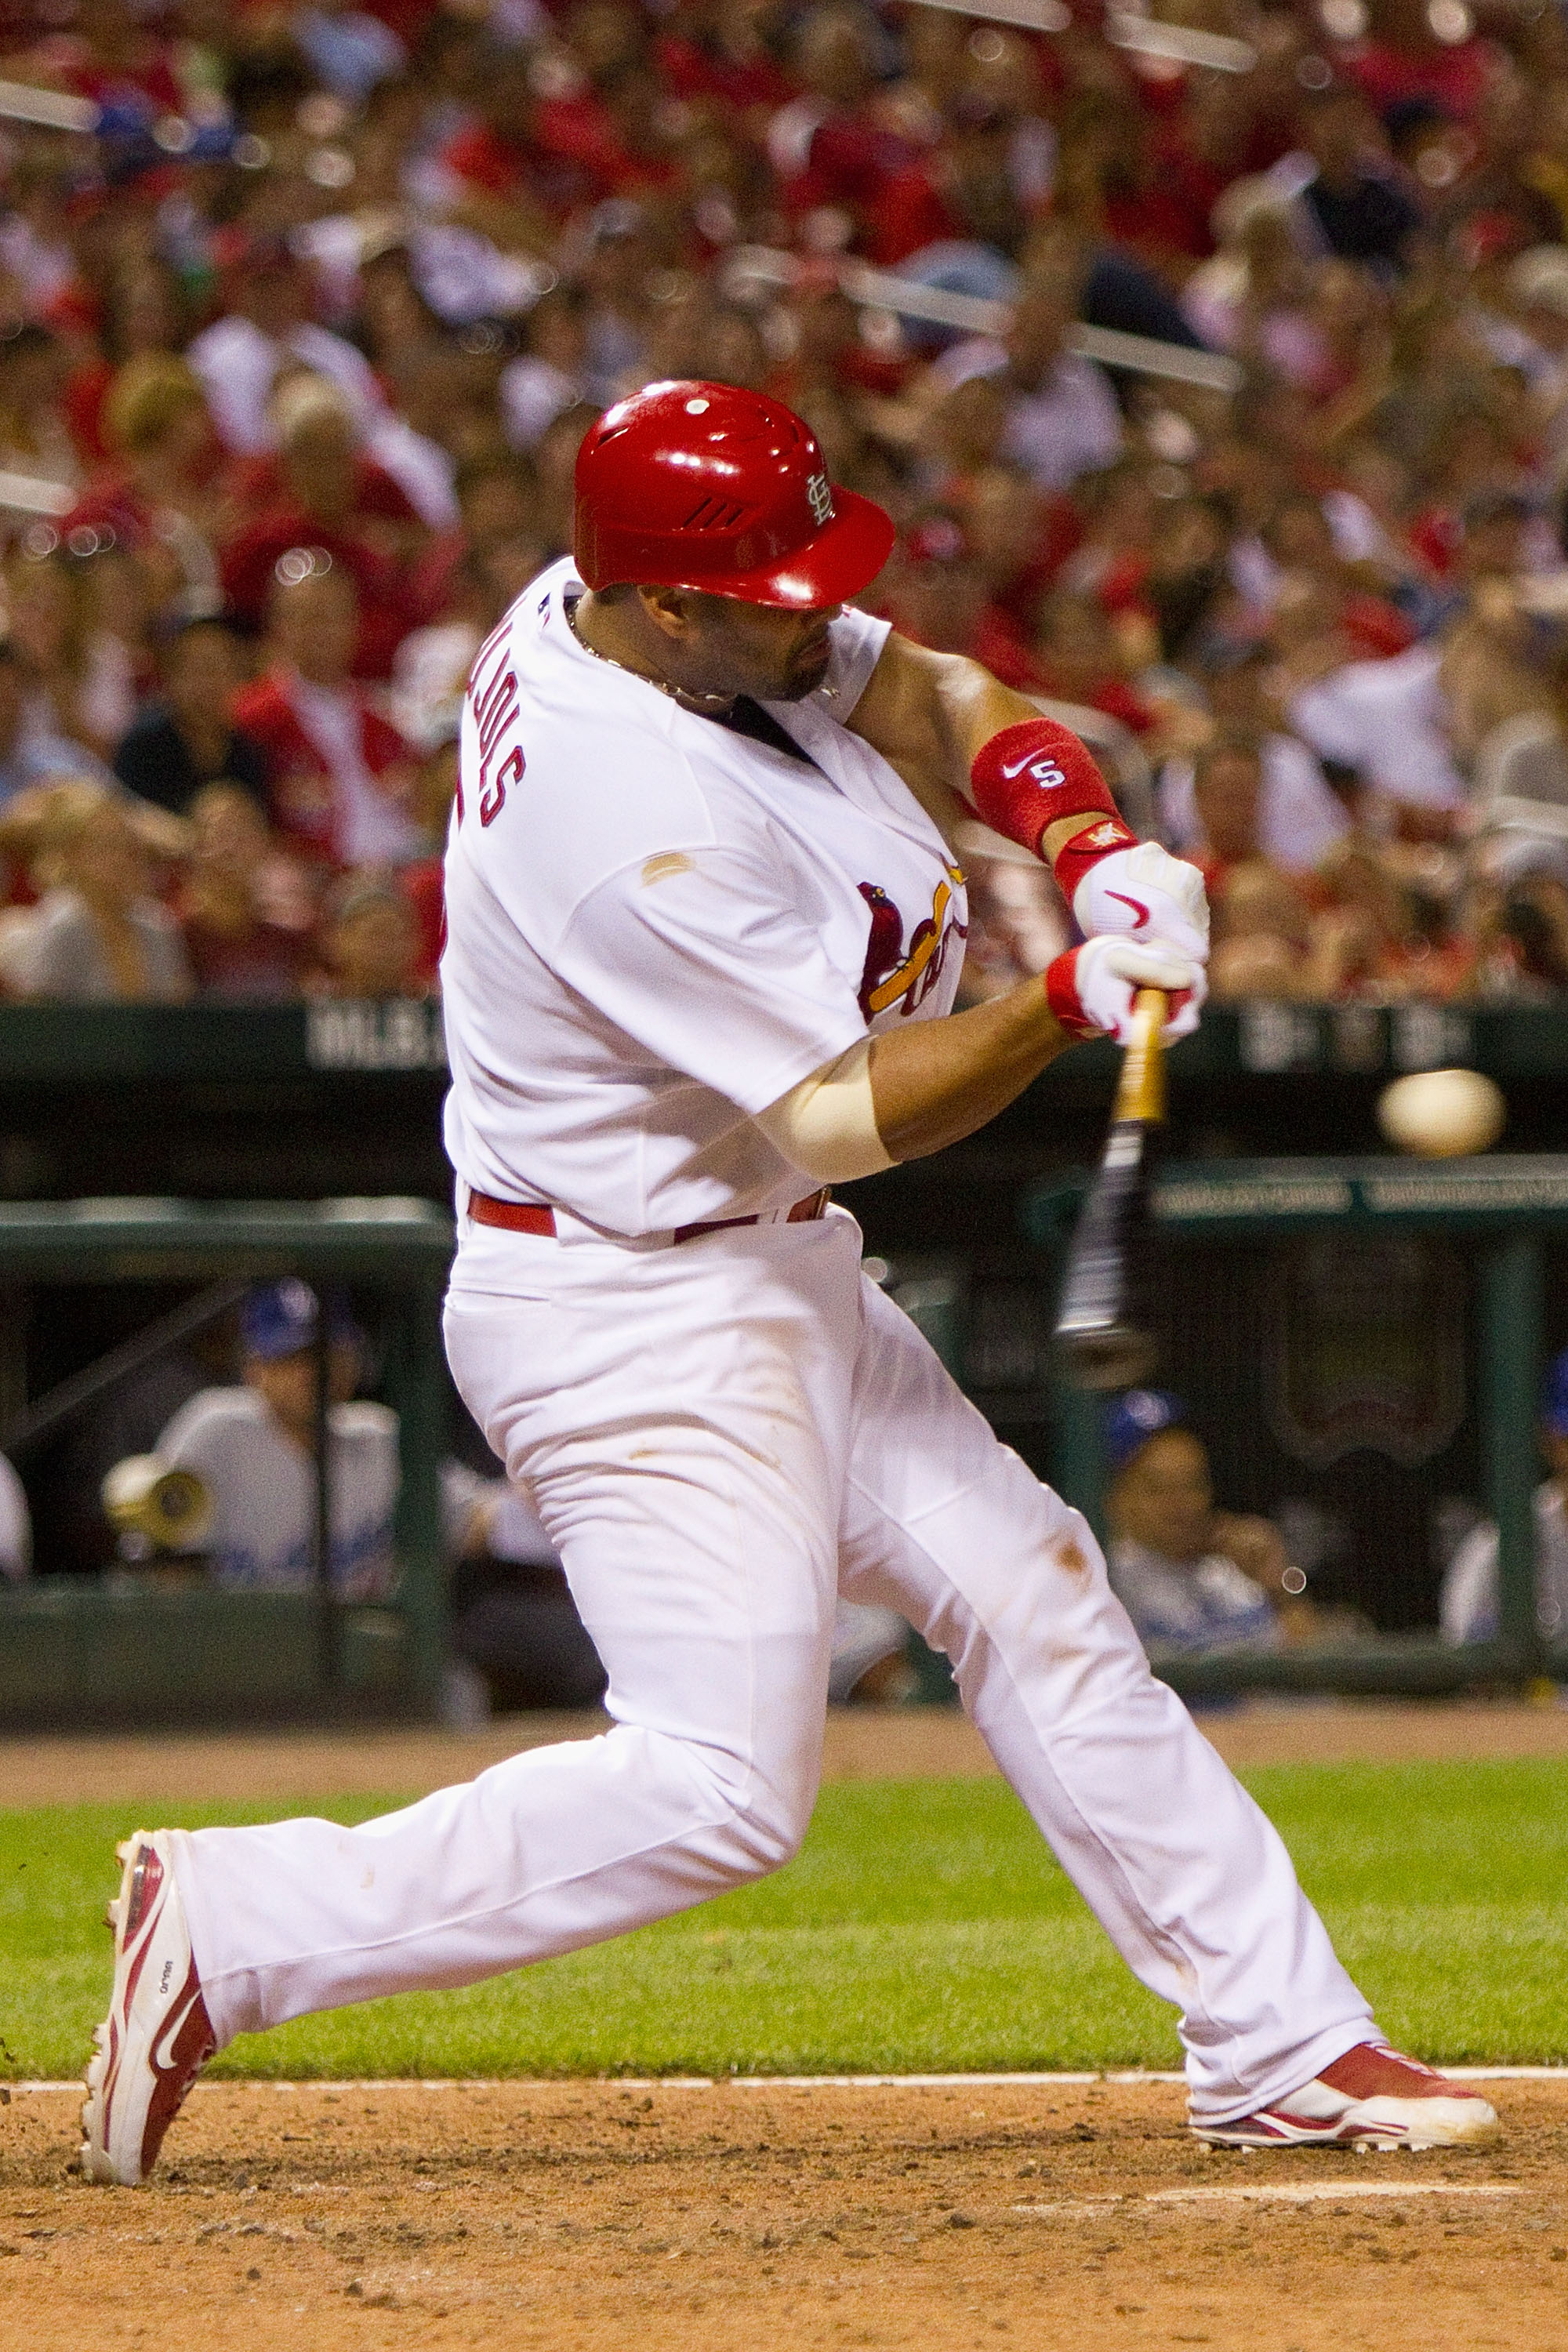 ST. LOUIS - JULY 15: Albert Pujols #5 of the St. Louis Cardinals collects a hit against the Los Angeles Dodgers at Busch Stadium on July 15, 2010 in St. Louis, Missouri.  The Cardinals beat the Dodgers 7-1.  (Photo by Dilip Vishwanat/Getty Images)